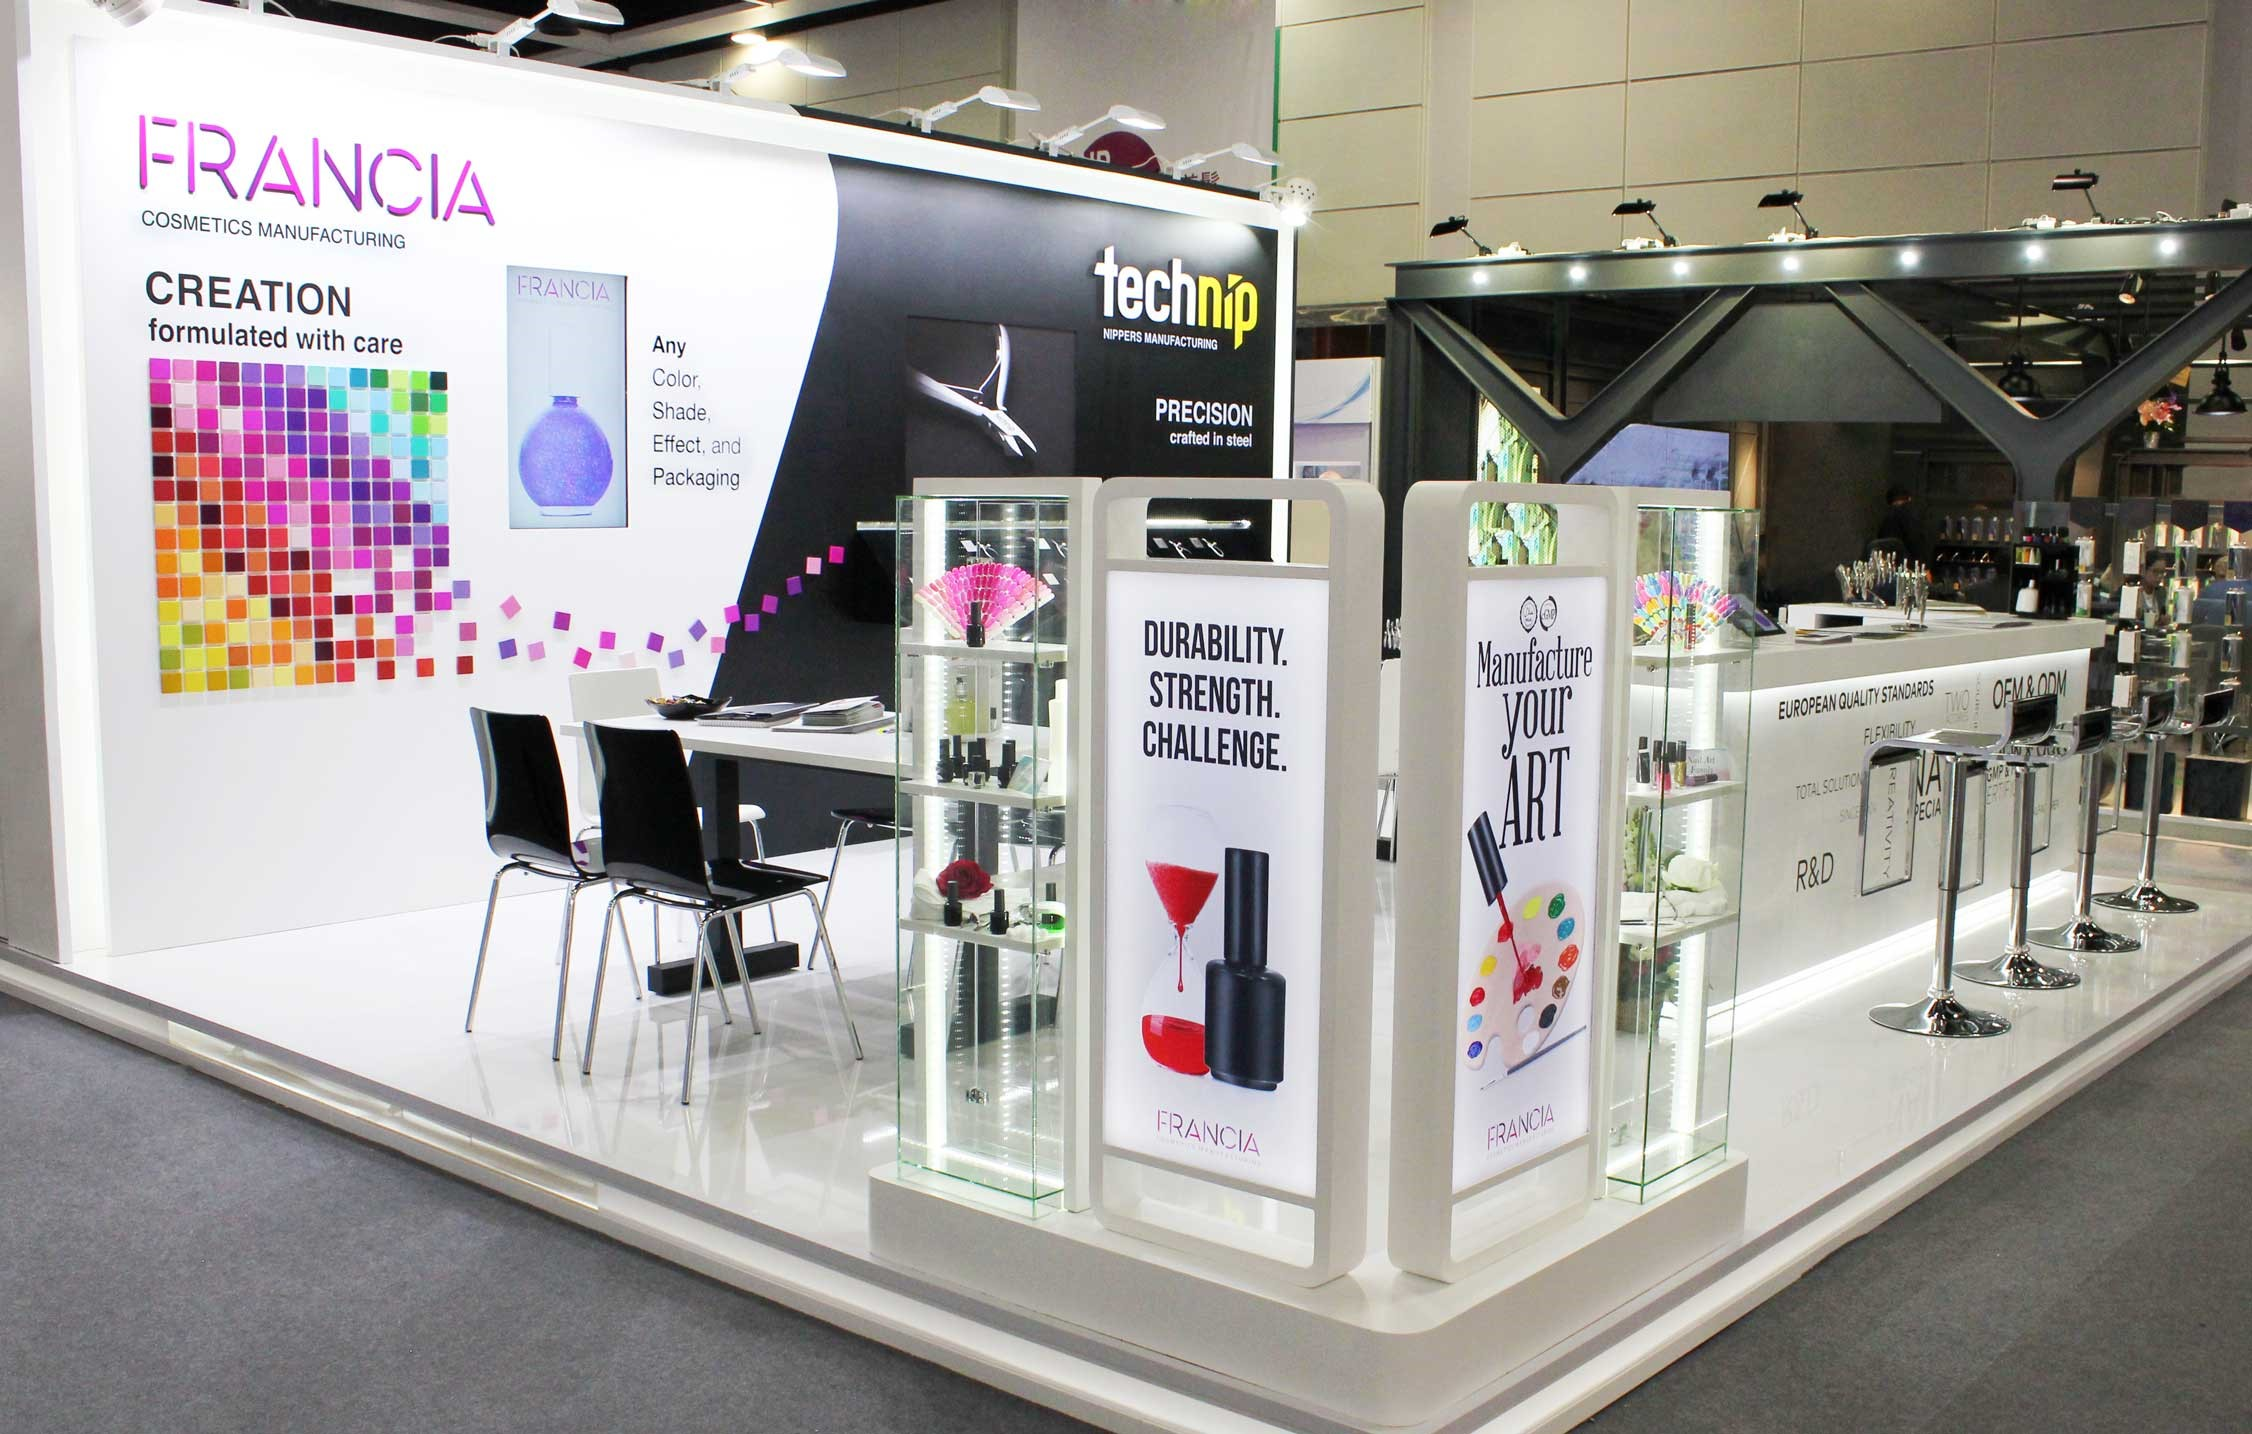 Francia Beauty Group was in Hong Kong last month